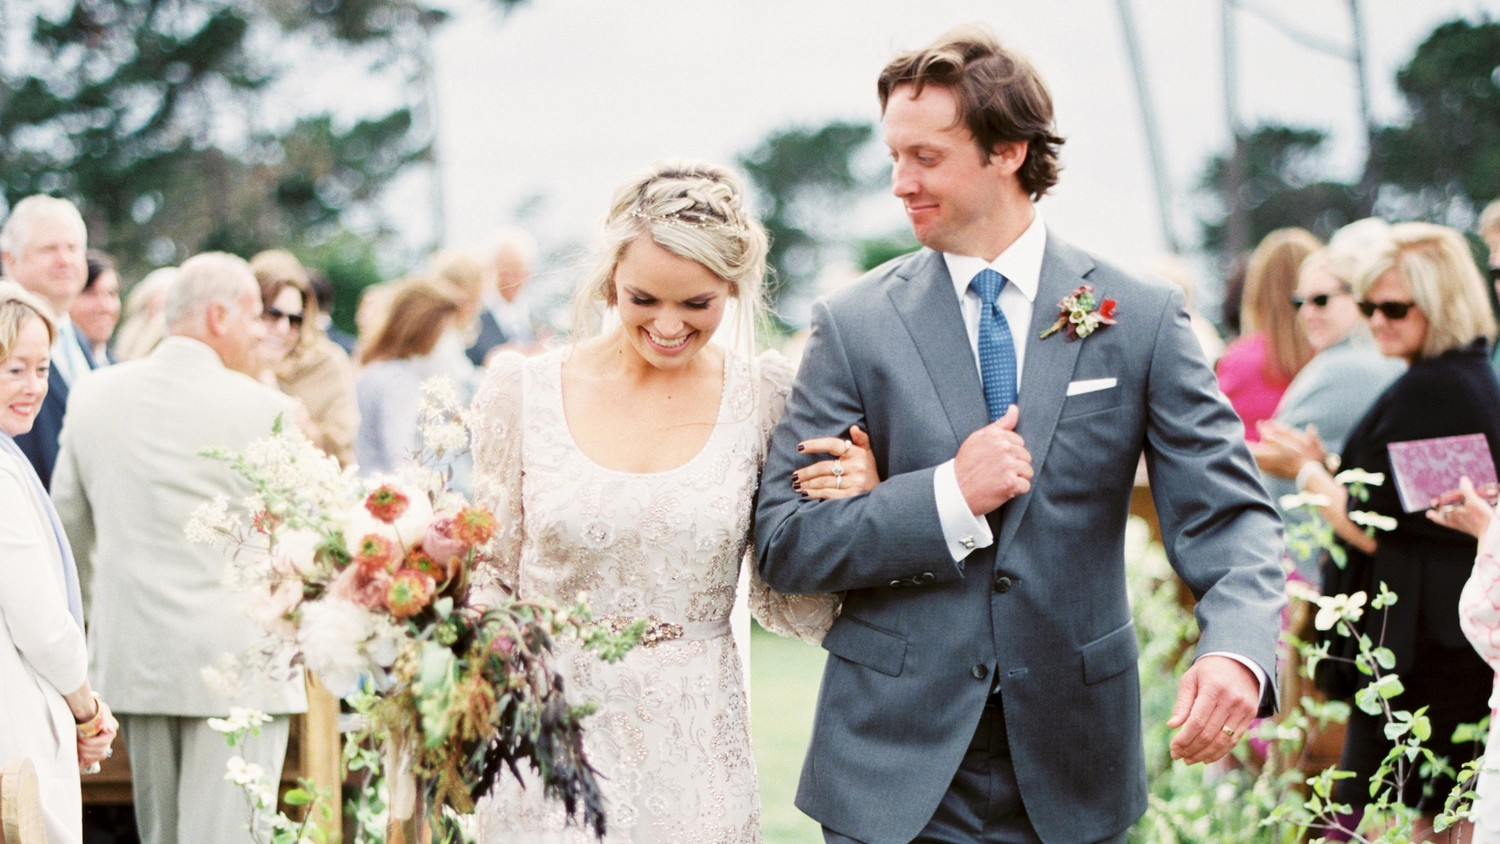 Martha Stewart Weddings: An Old-World Inspired California Wedding